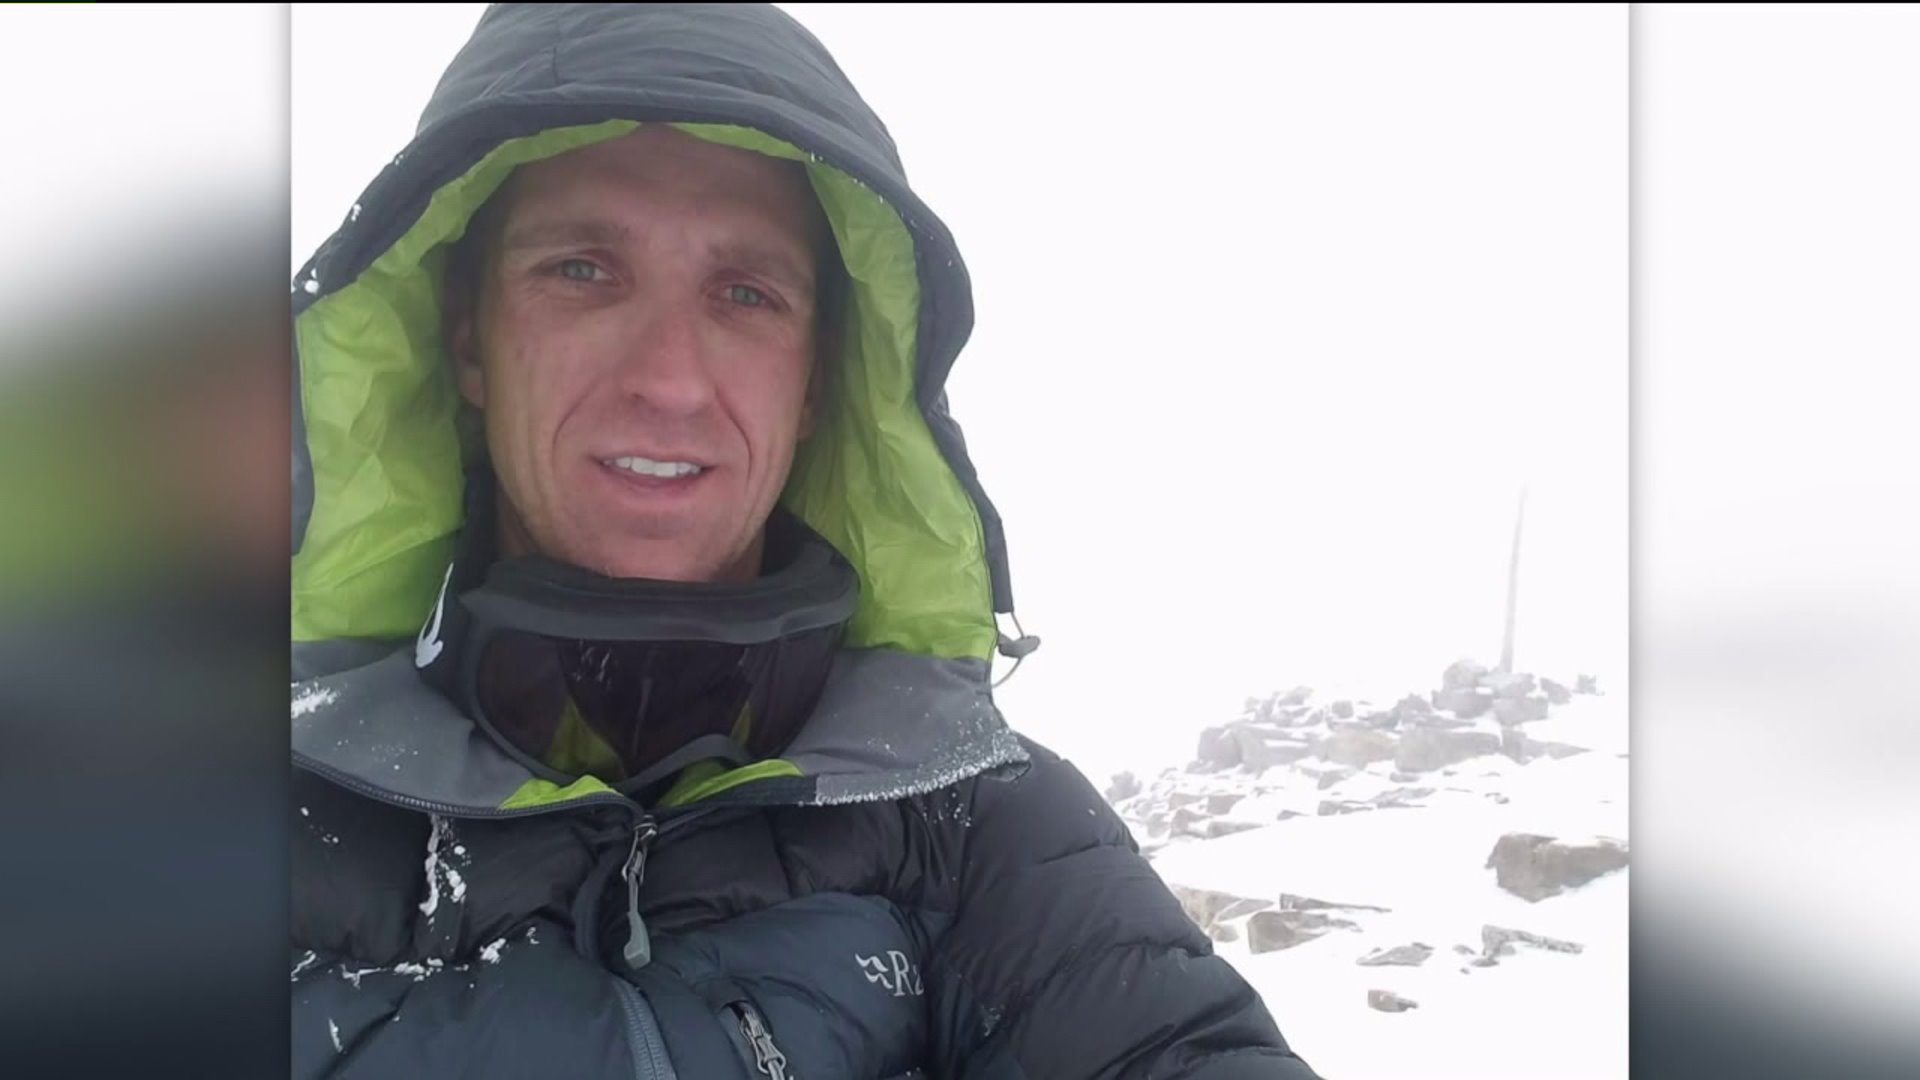 Rescuers Battle Brutal Weather in Search for Missing Colorado Mountain Climber in Russia